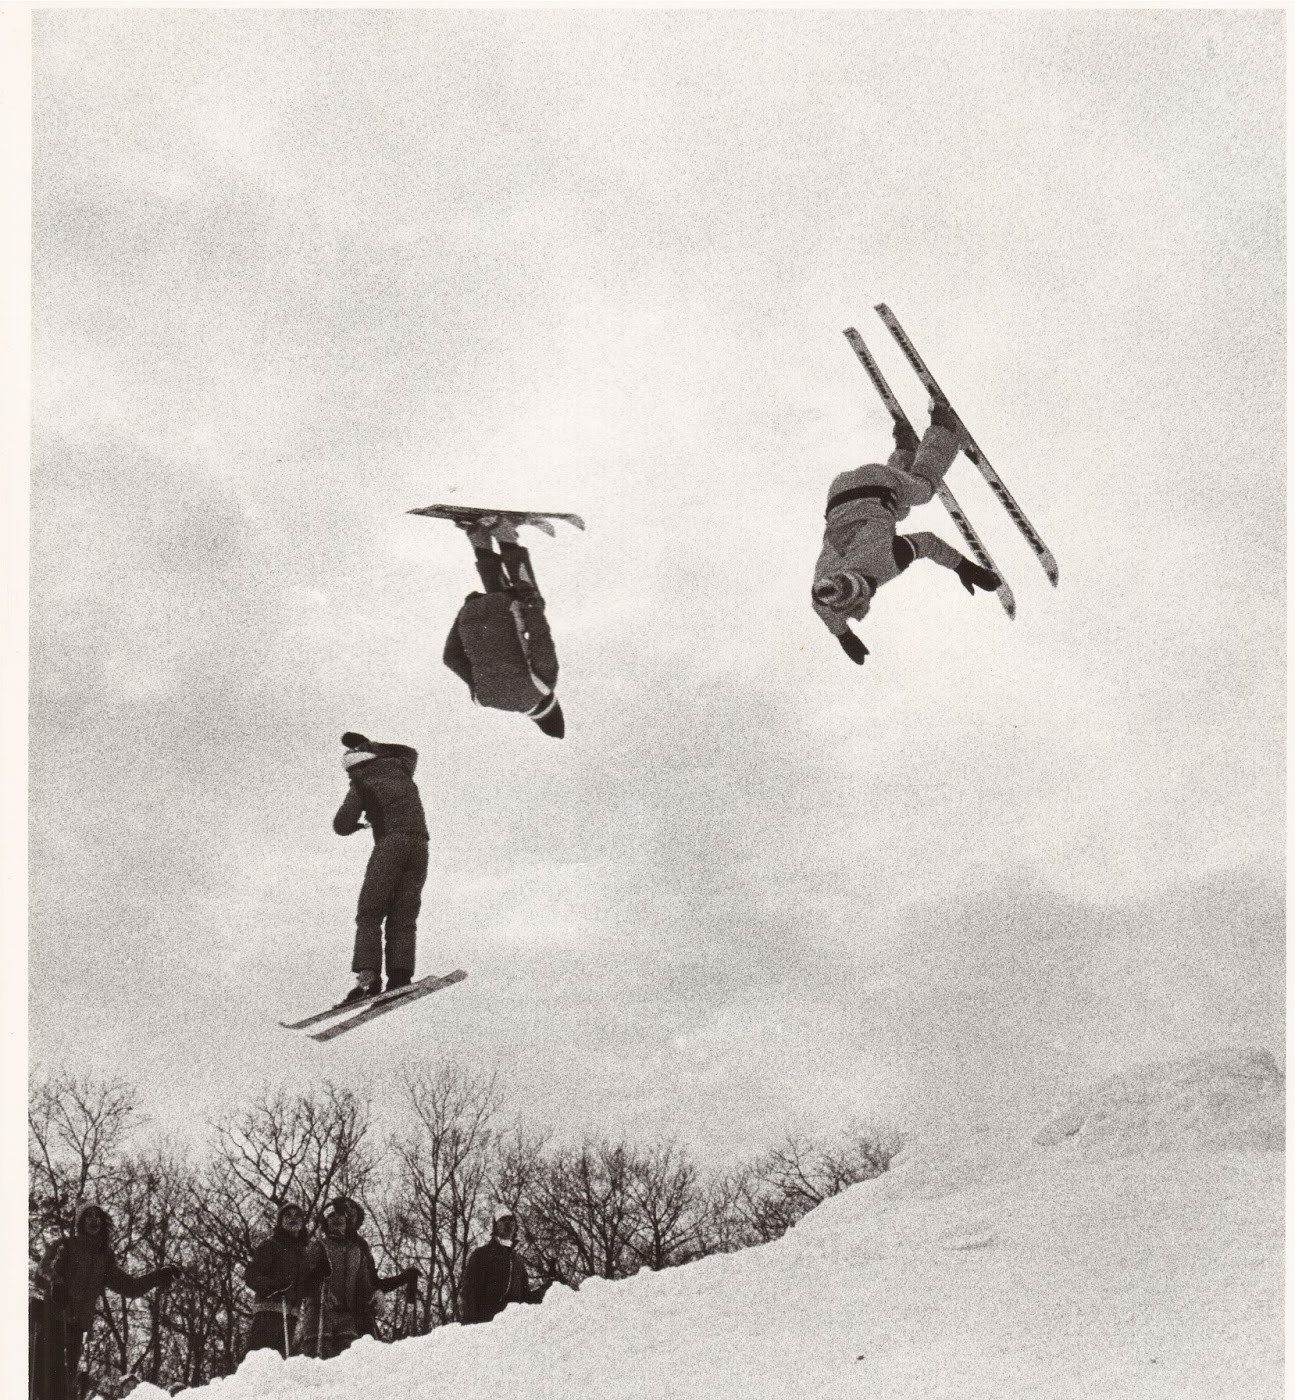 Teenagers Steve Hambling (left), Mike Nemesvary, and Mike Abson (right) getting some air at Mont Cascades in 1976. Photo: Laszlo Nemesvary